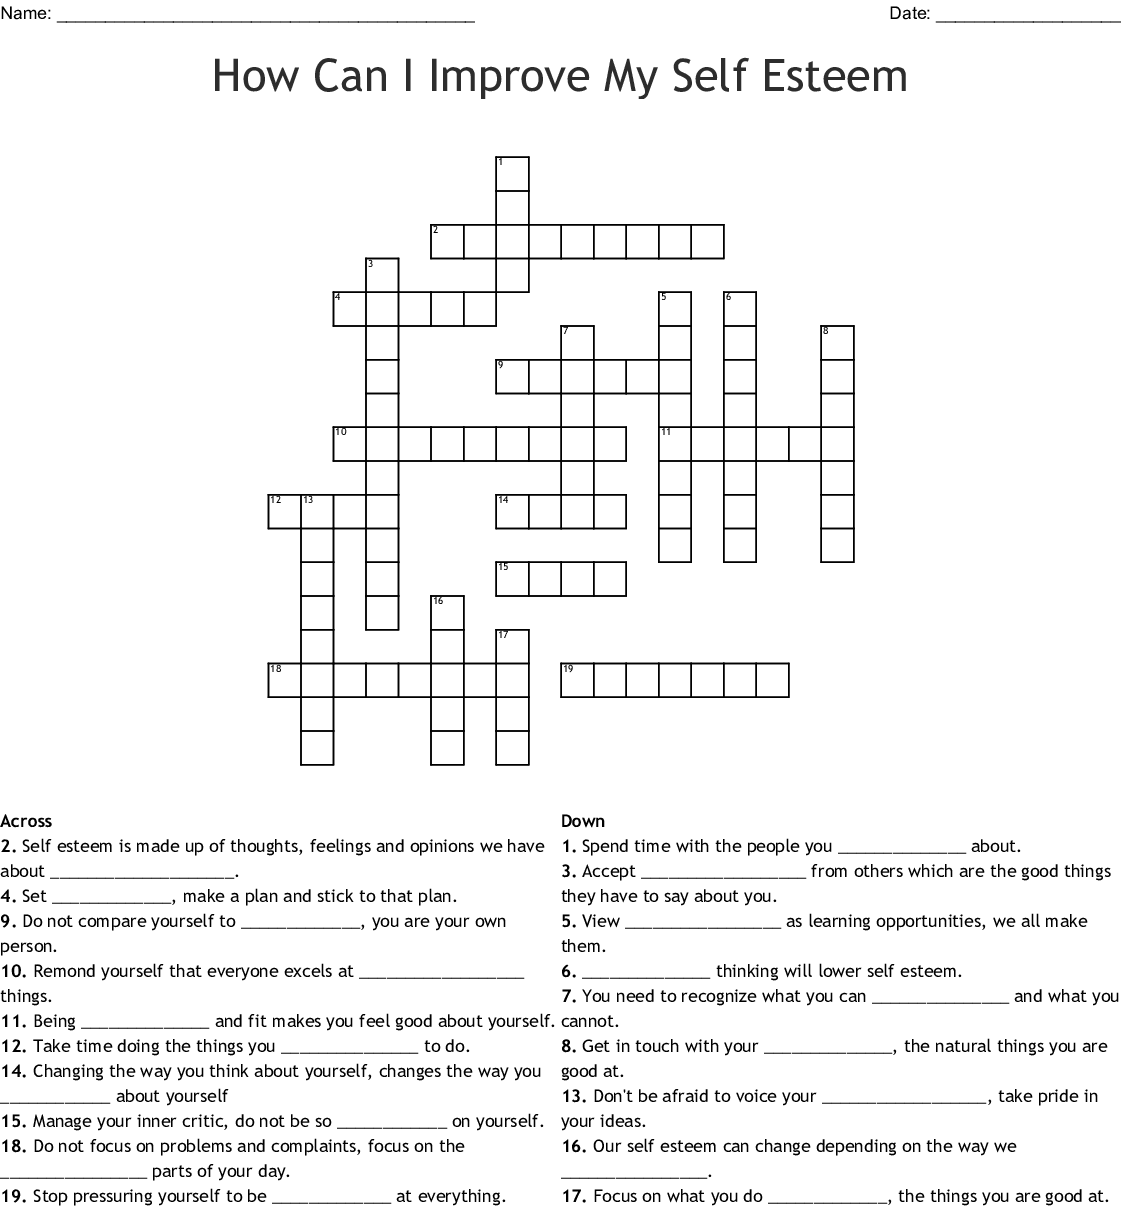 How Can I Improve My Self Esteem Crossword